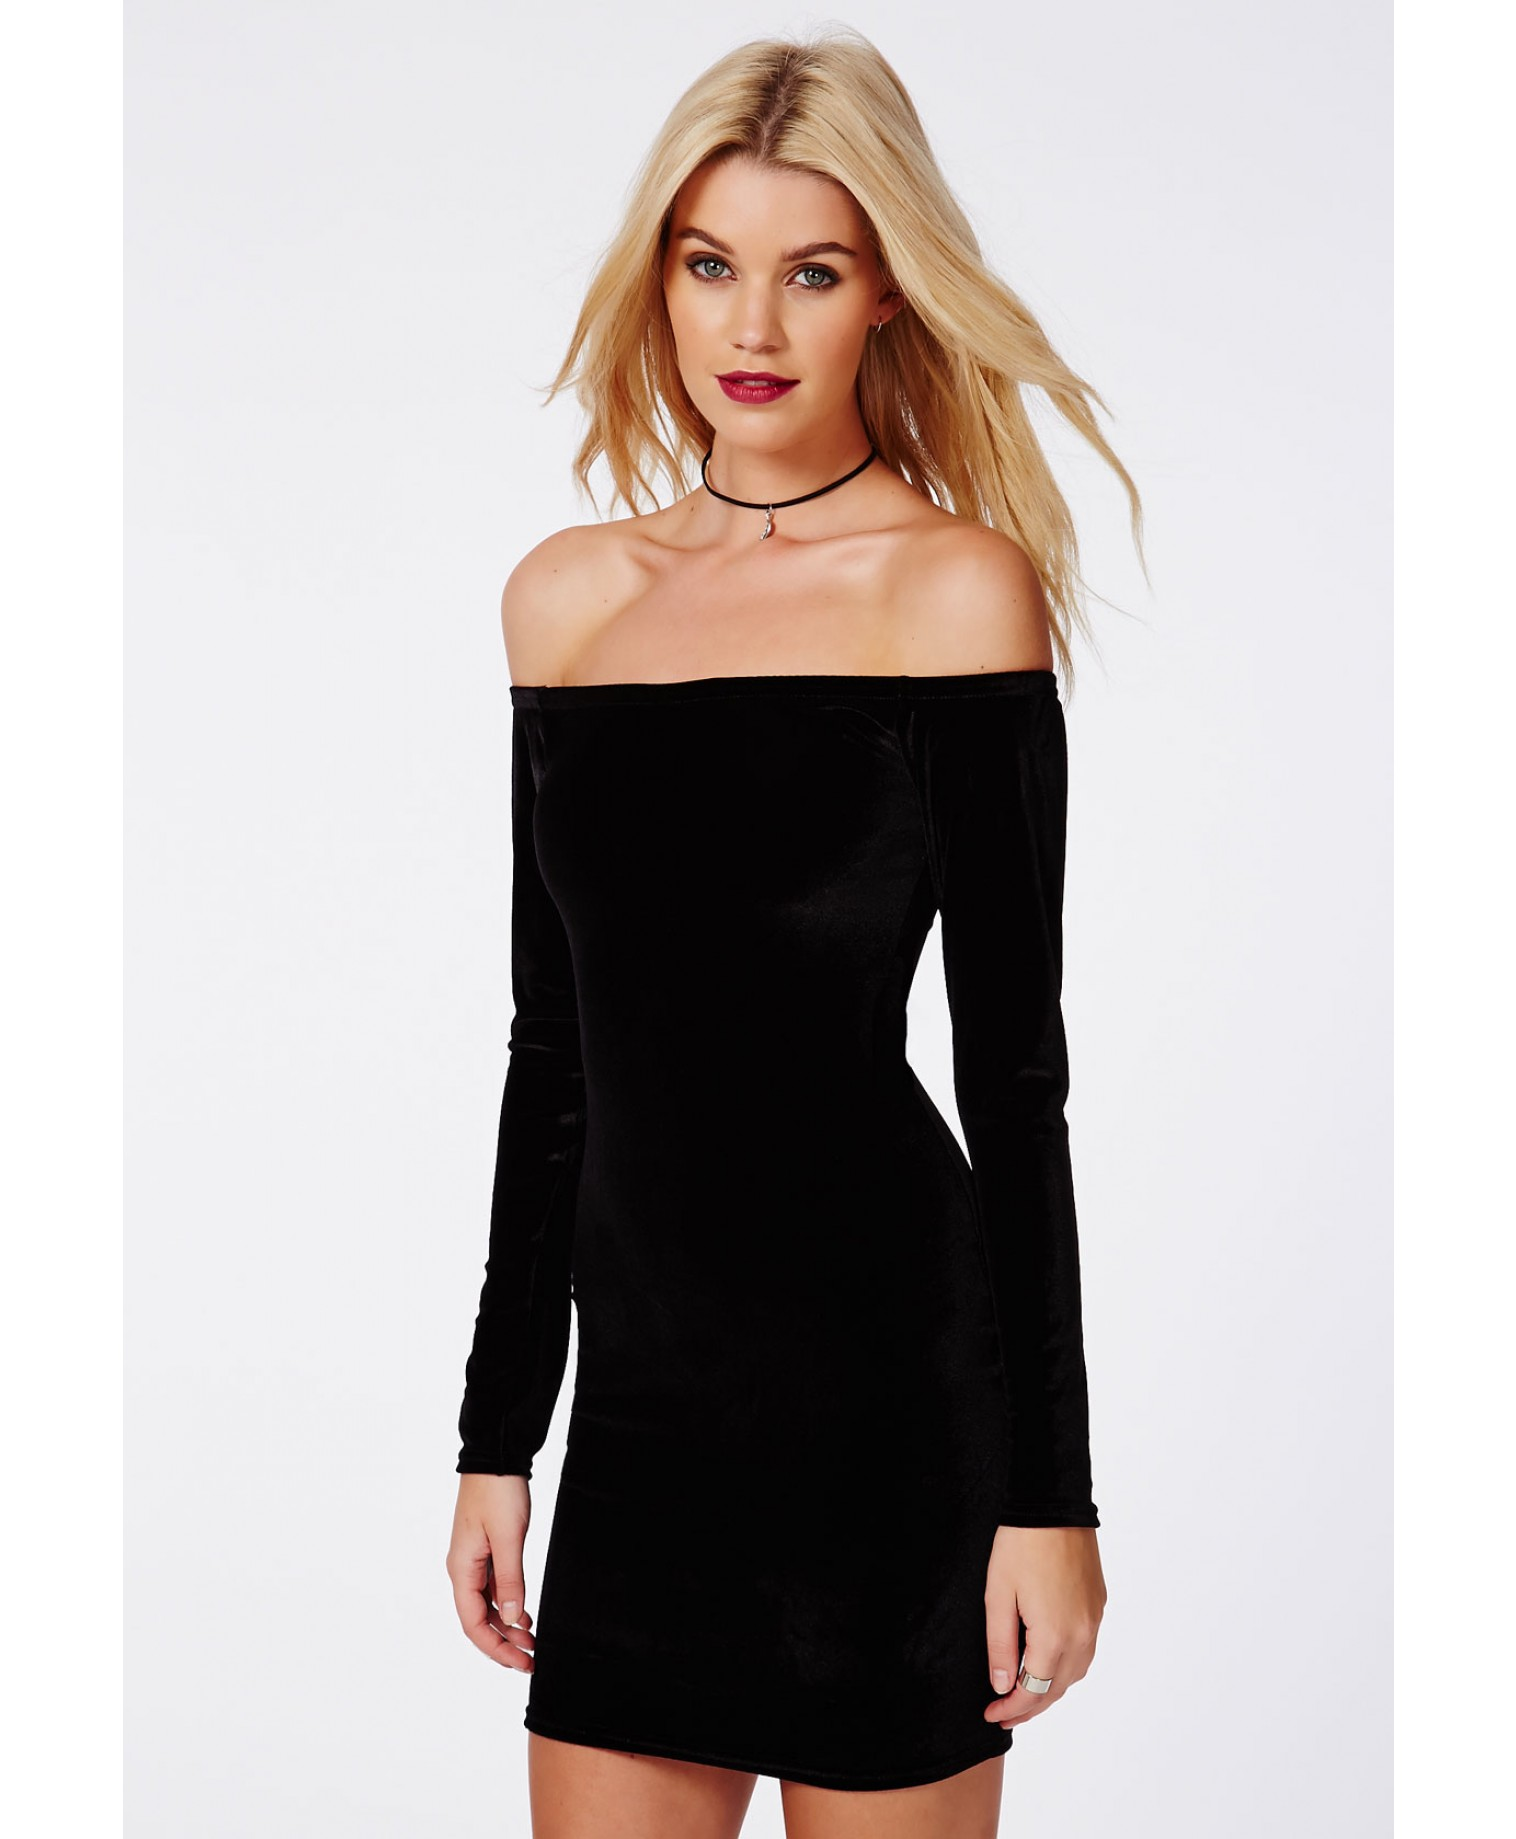 Rorry Velvet Bardot Bodycon Dress Black 5